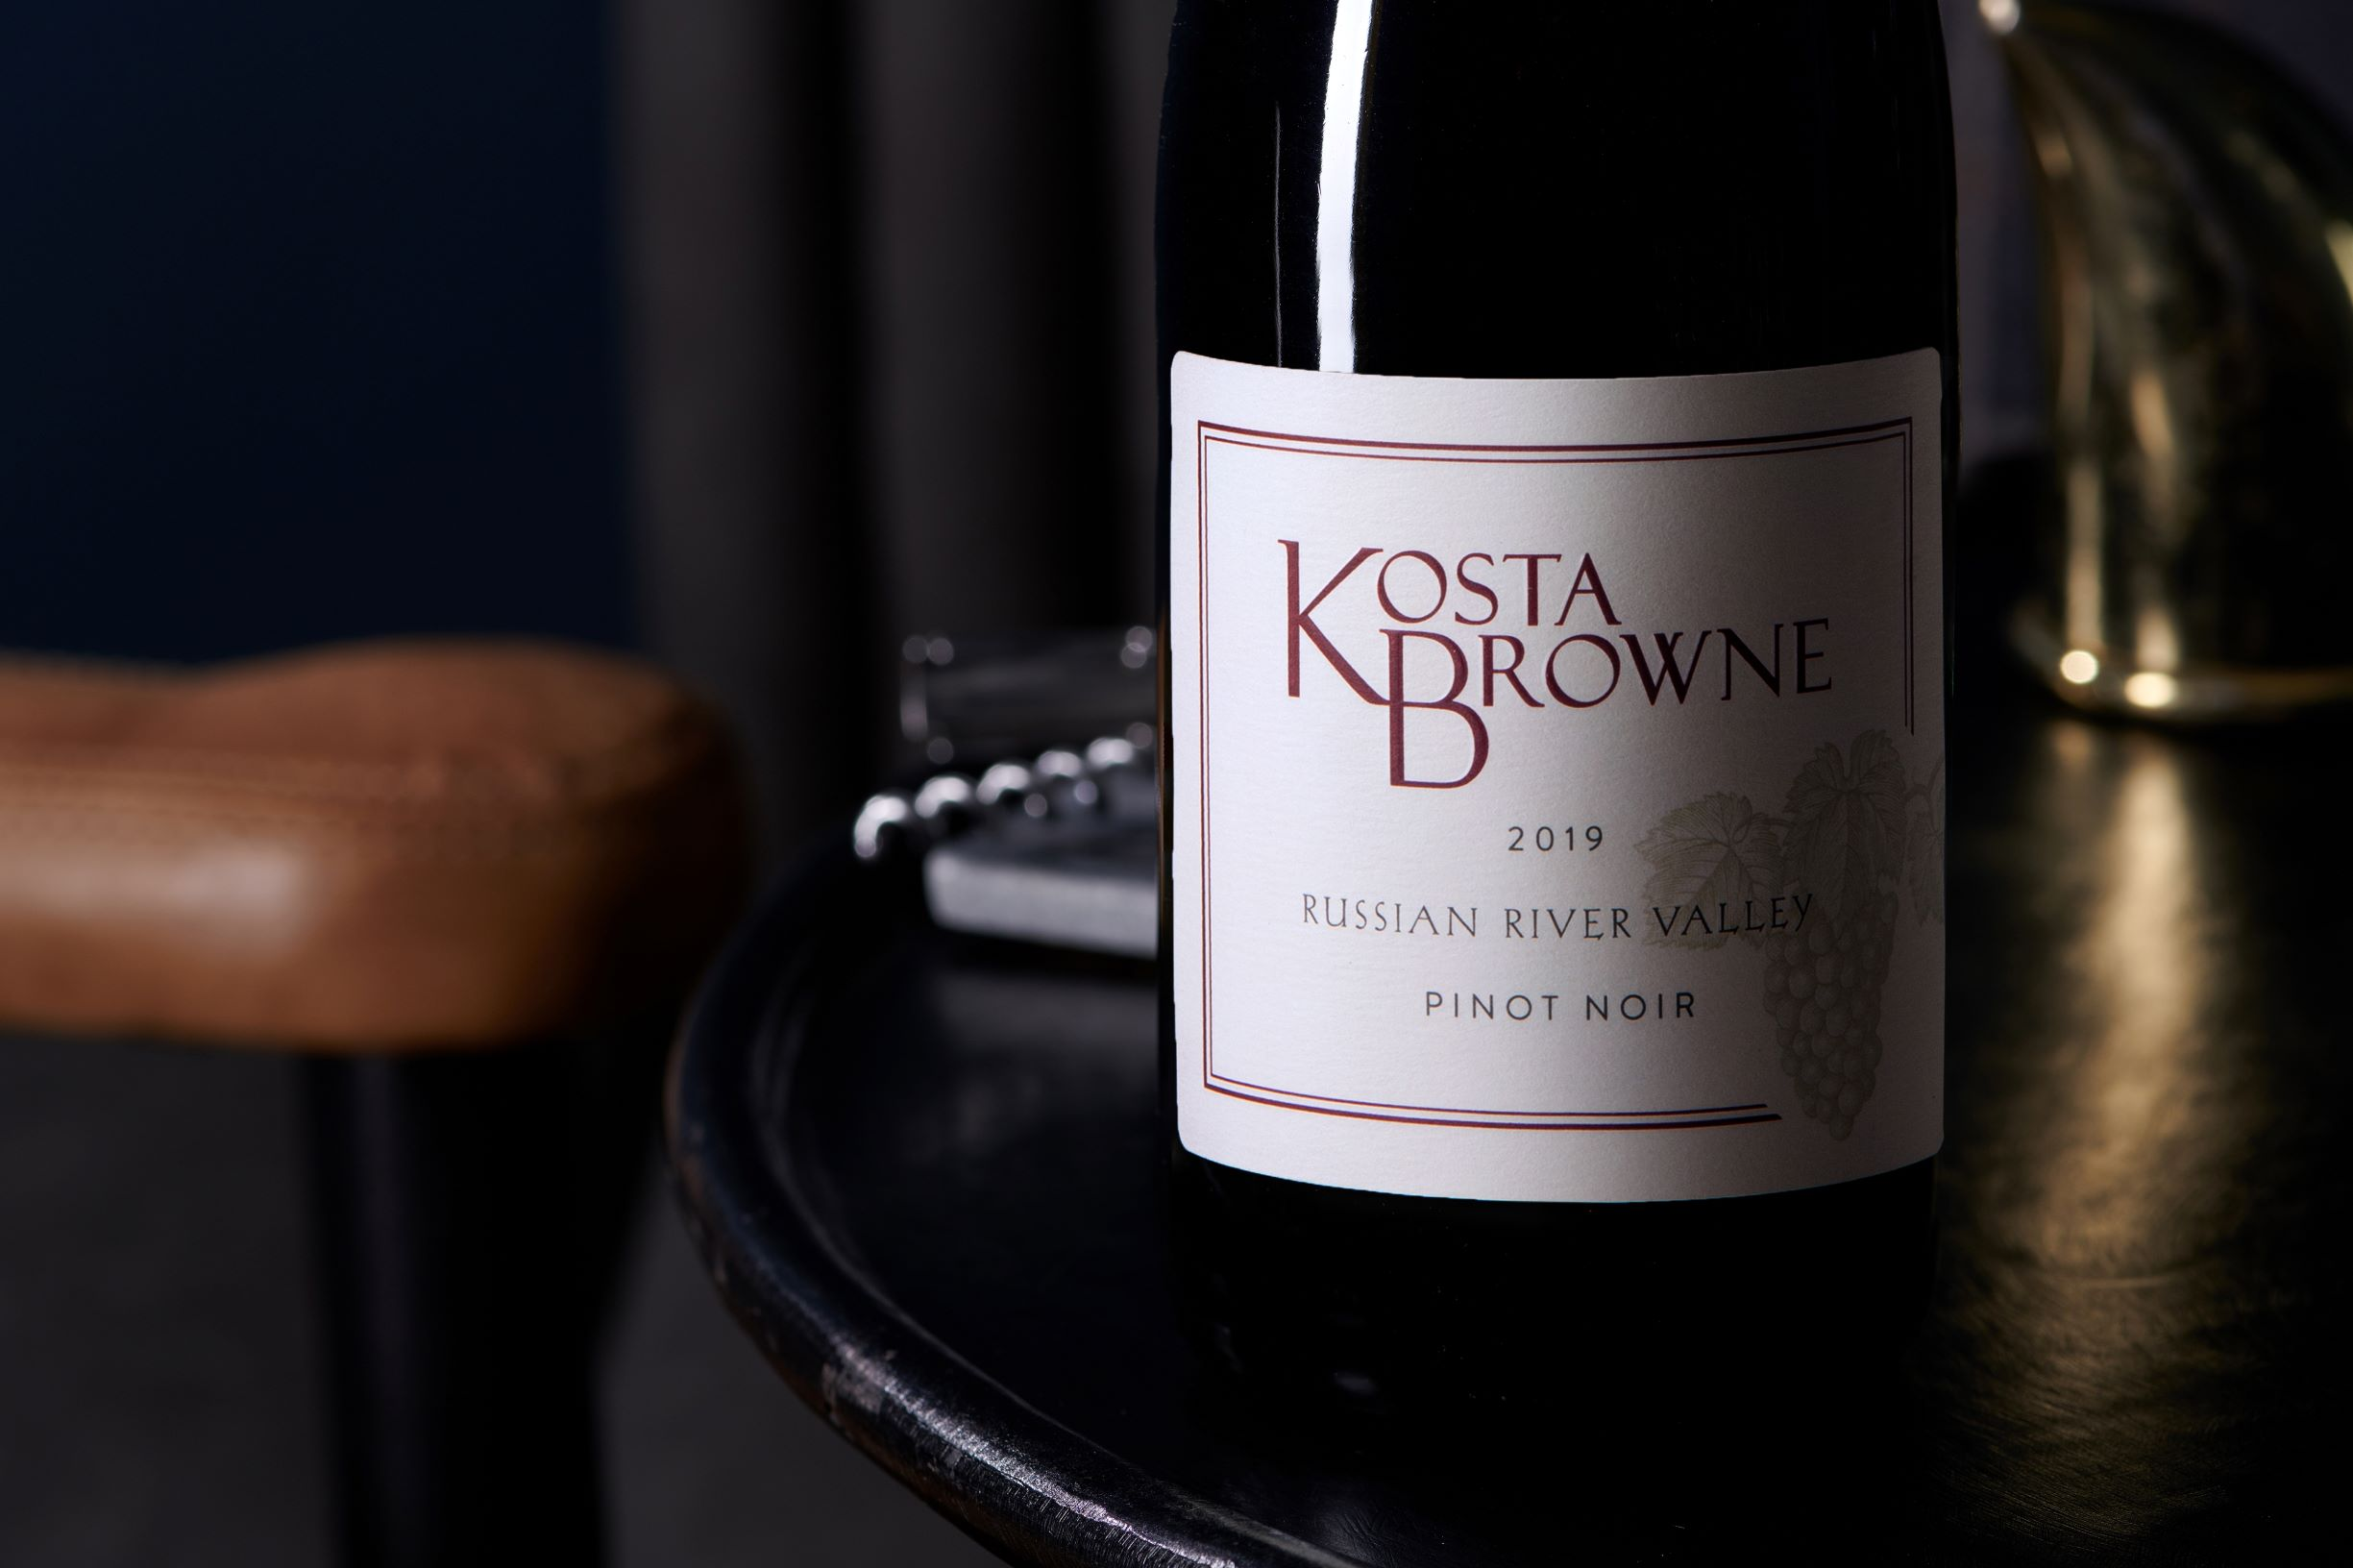 2019 Russian River Valley Pinot Noir - Kosta Browne Winery